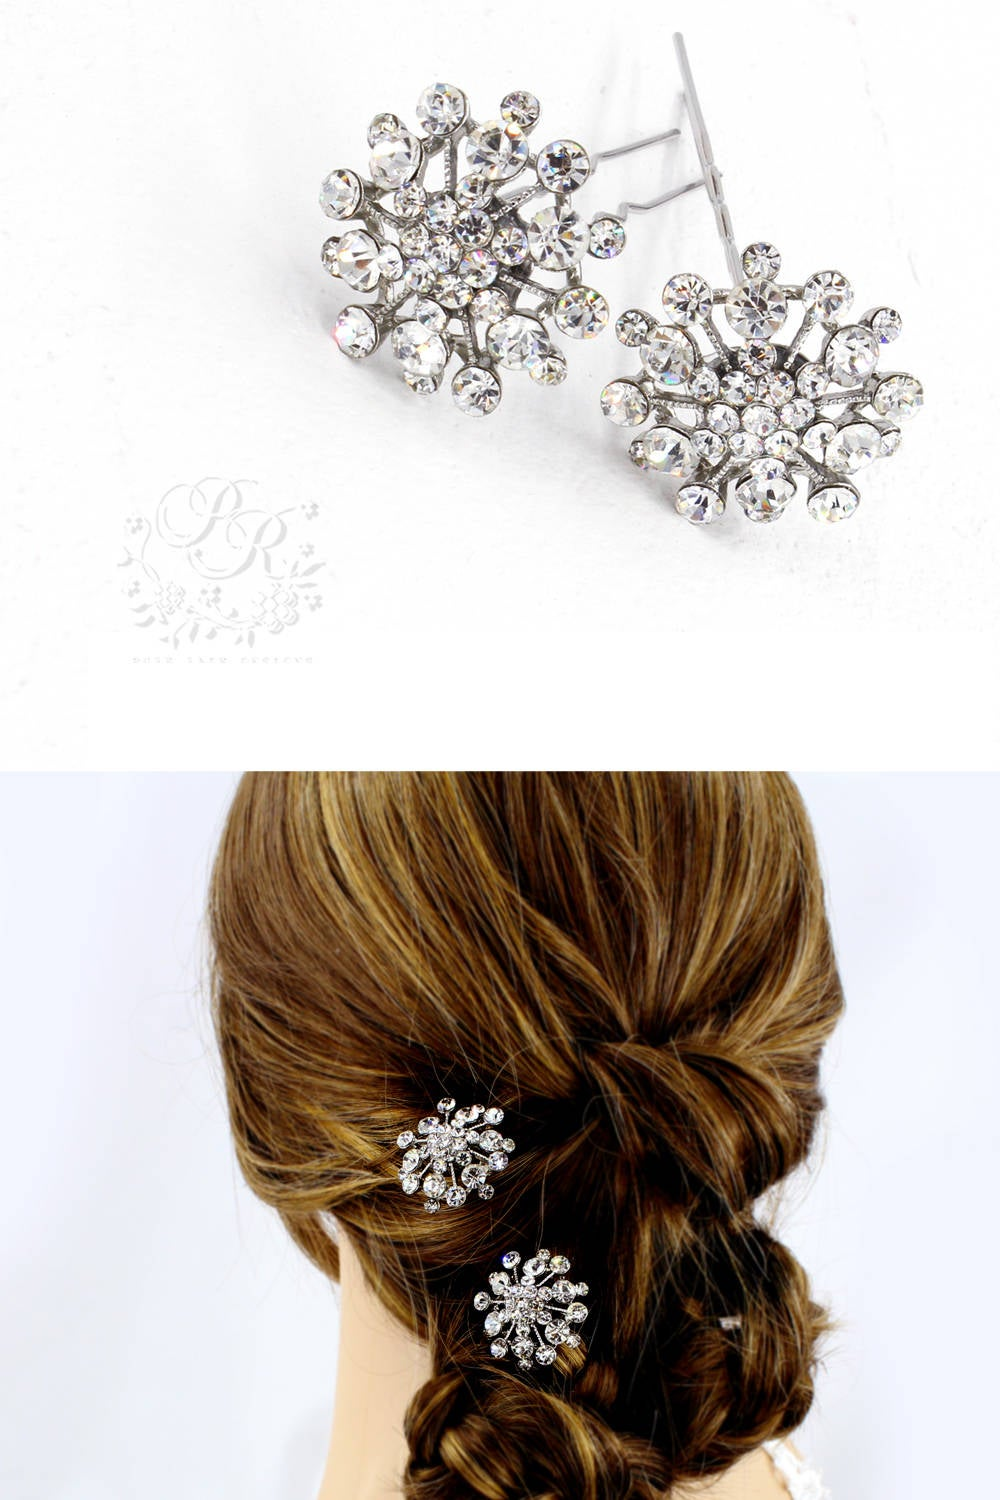 Weddings Hair Accessories Rhinestone Hair Pins Bridal Bridesmaid Crystal Comb Meteor